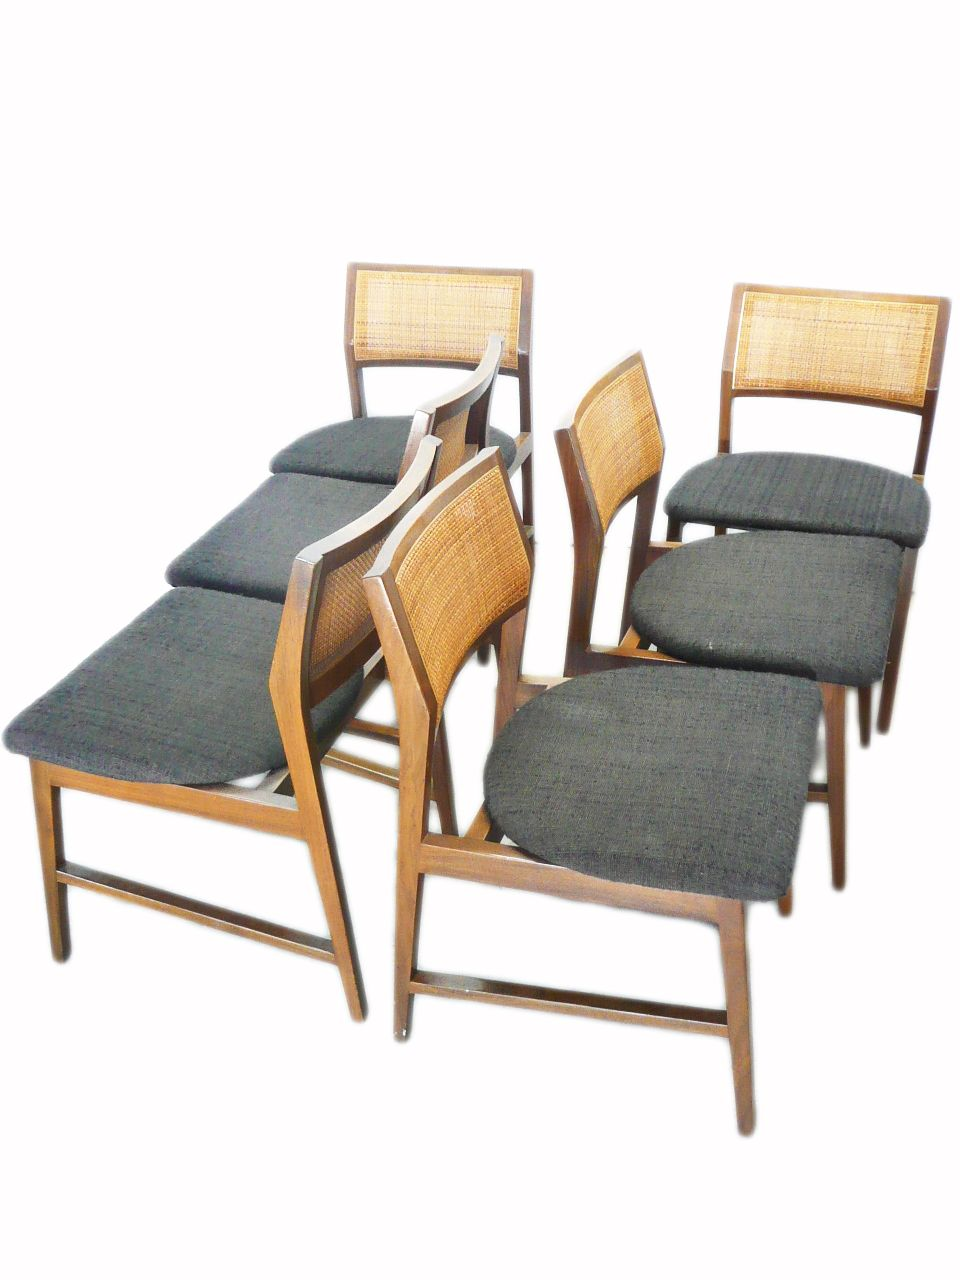 Mid Century Vintage Edward Wormley For Dunbar Cane Back Dining Chairs